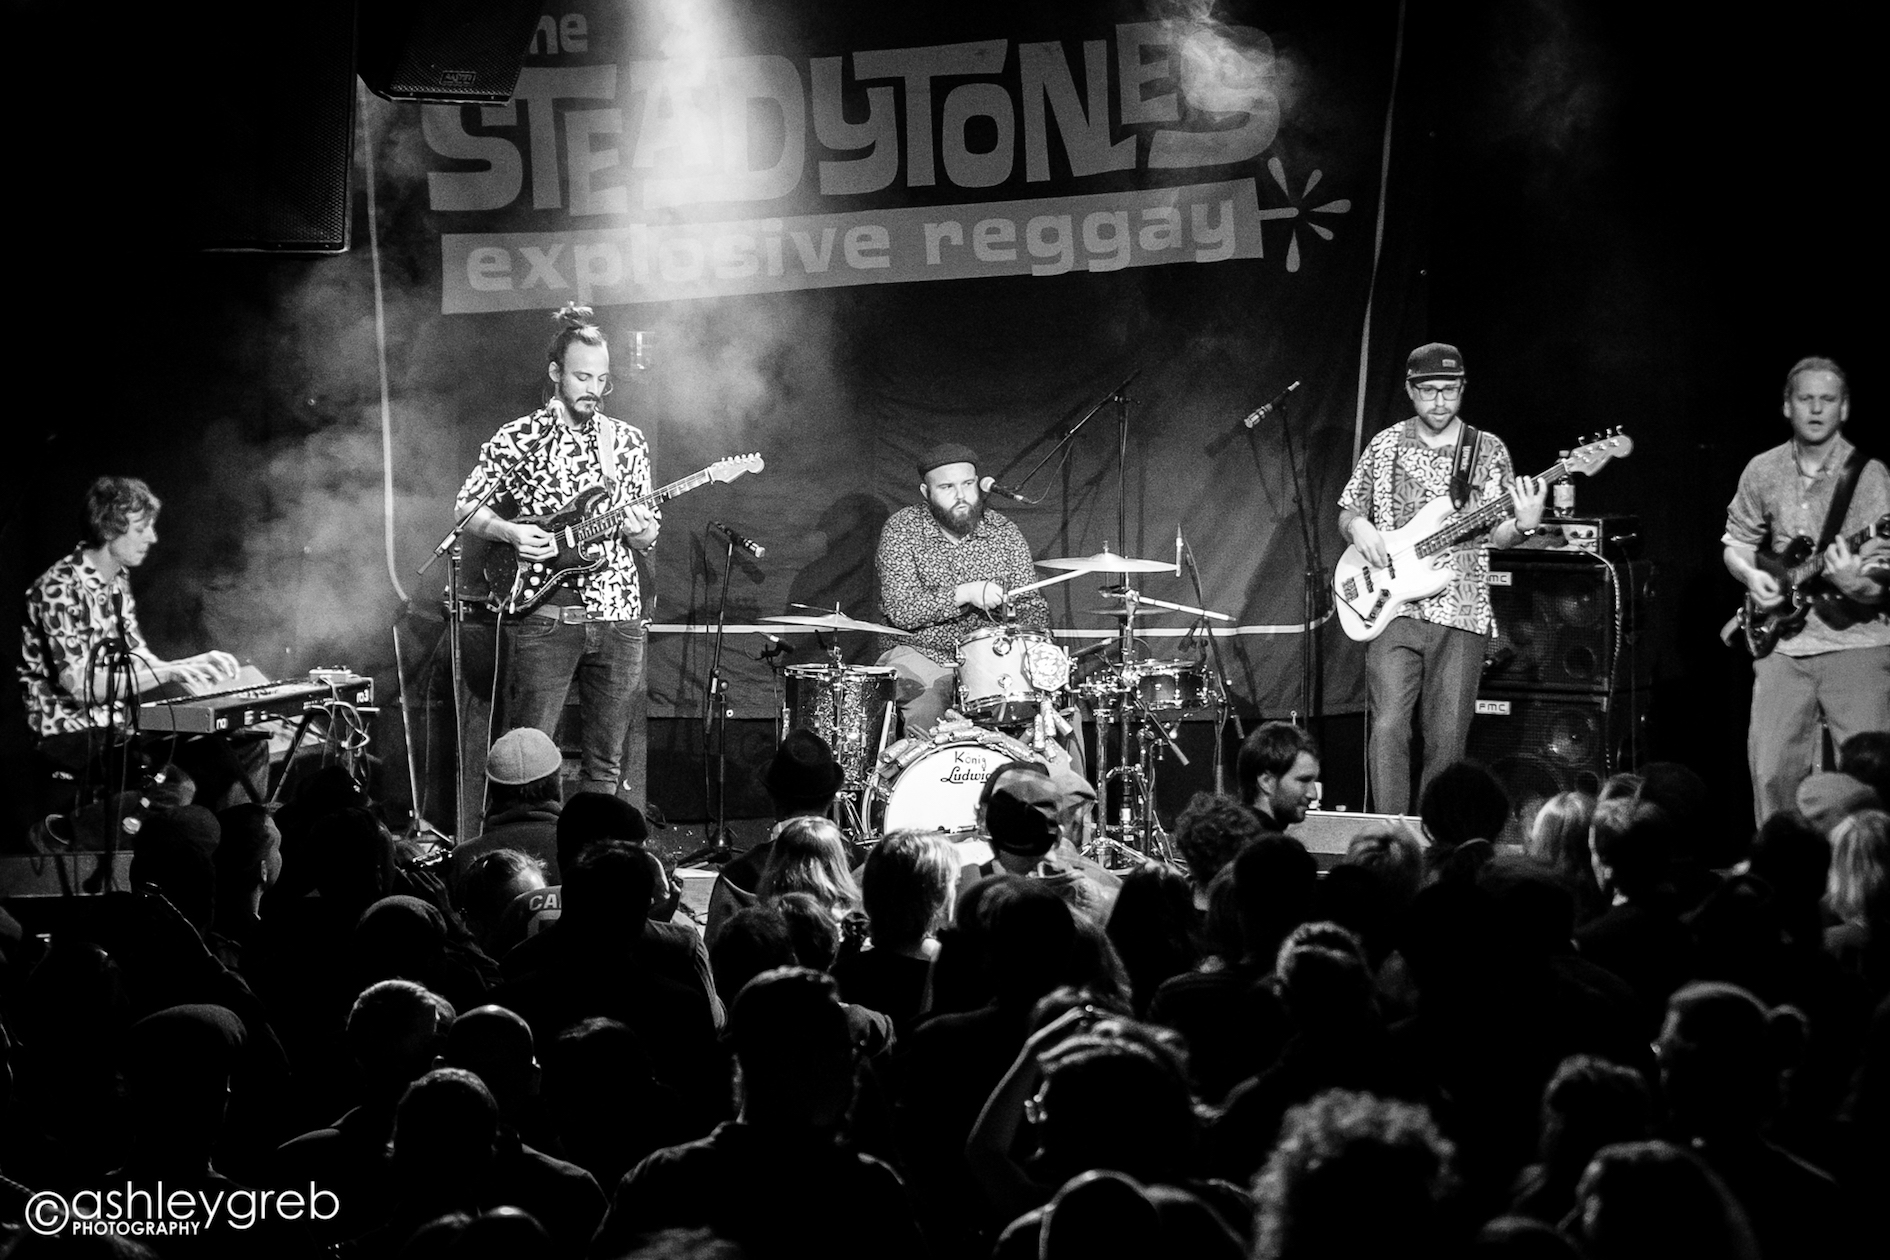 171021 the steadytones gebaude 9 koln 198